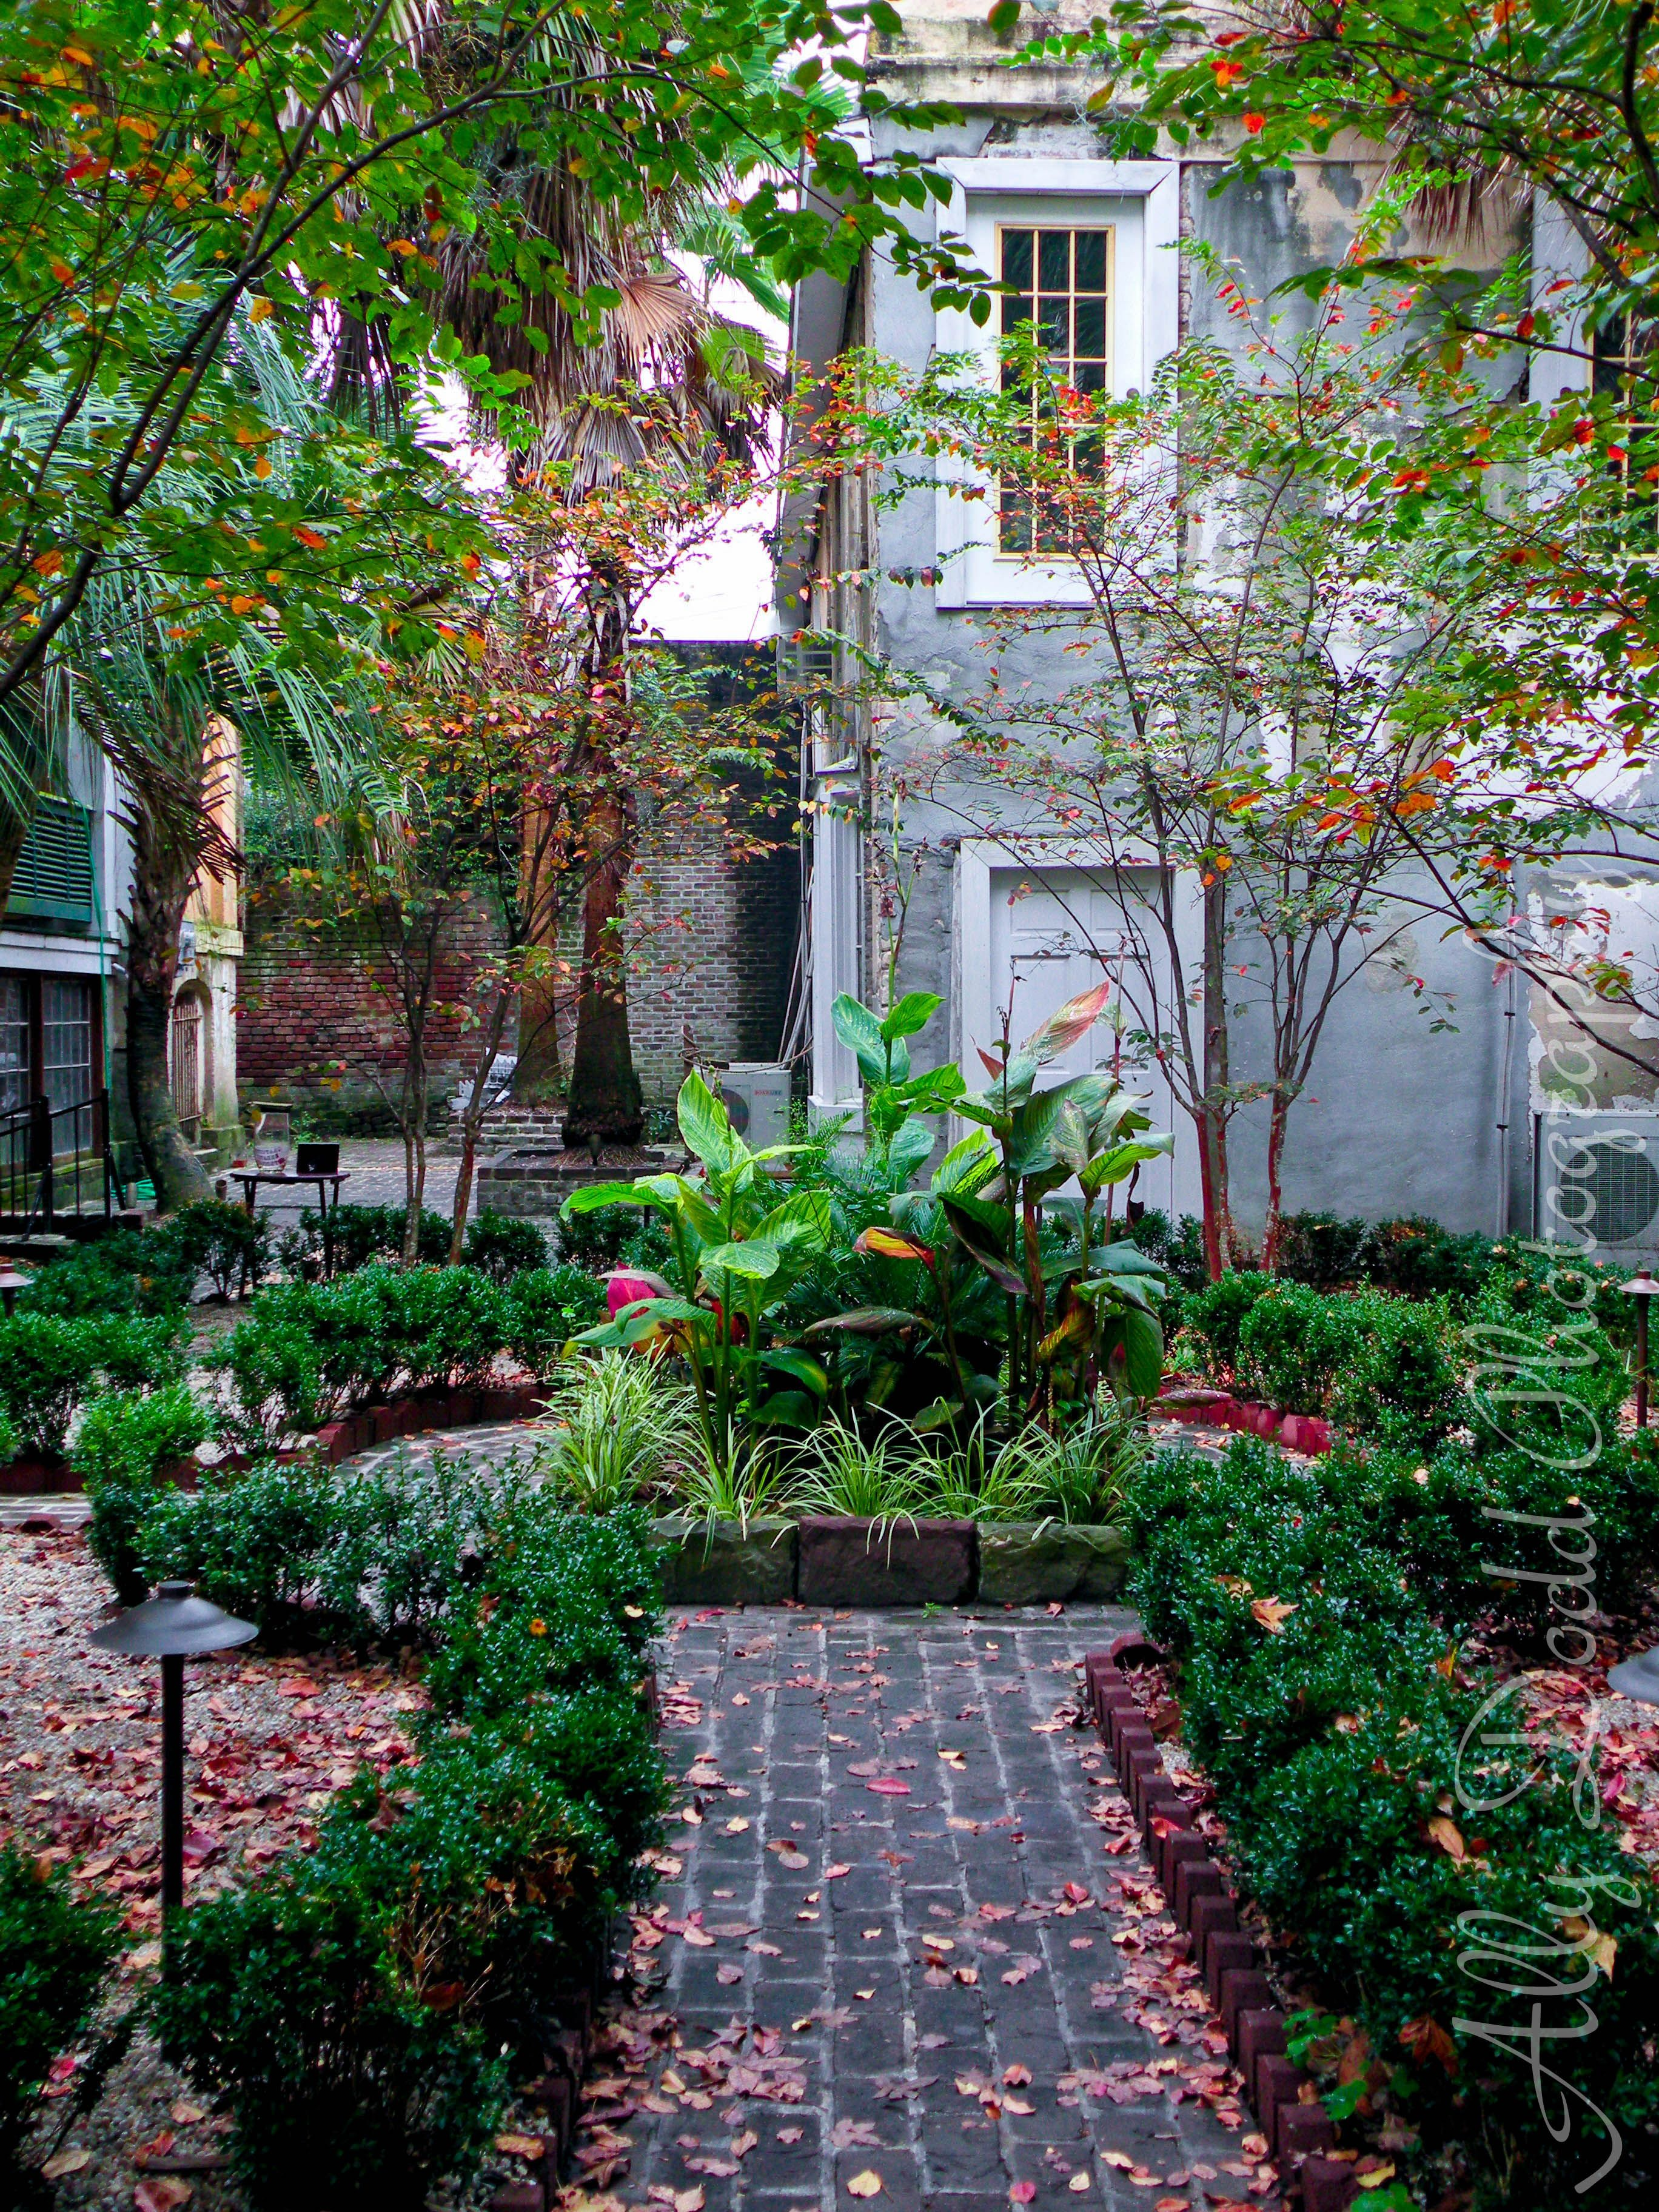 One of the many beautiful courtyards we'll see while